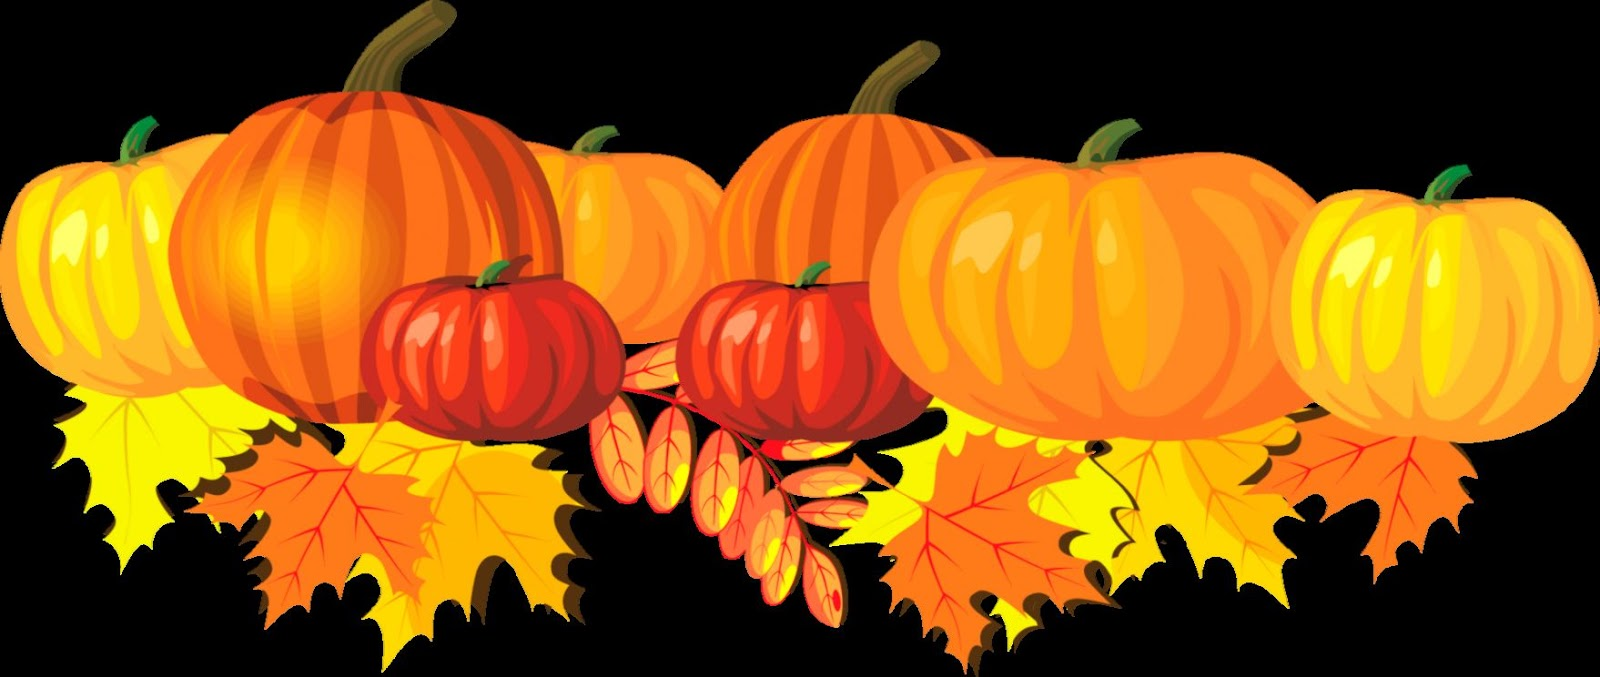 Pumpkins And Fall Leaves Clipart   Clipart Kid